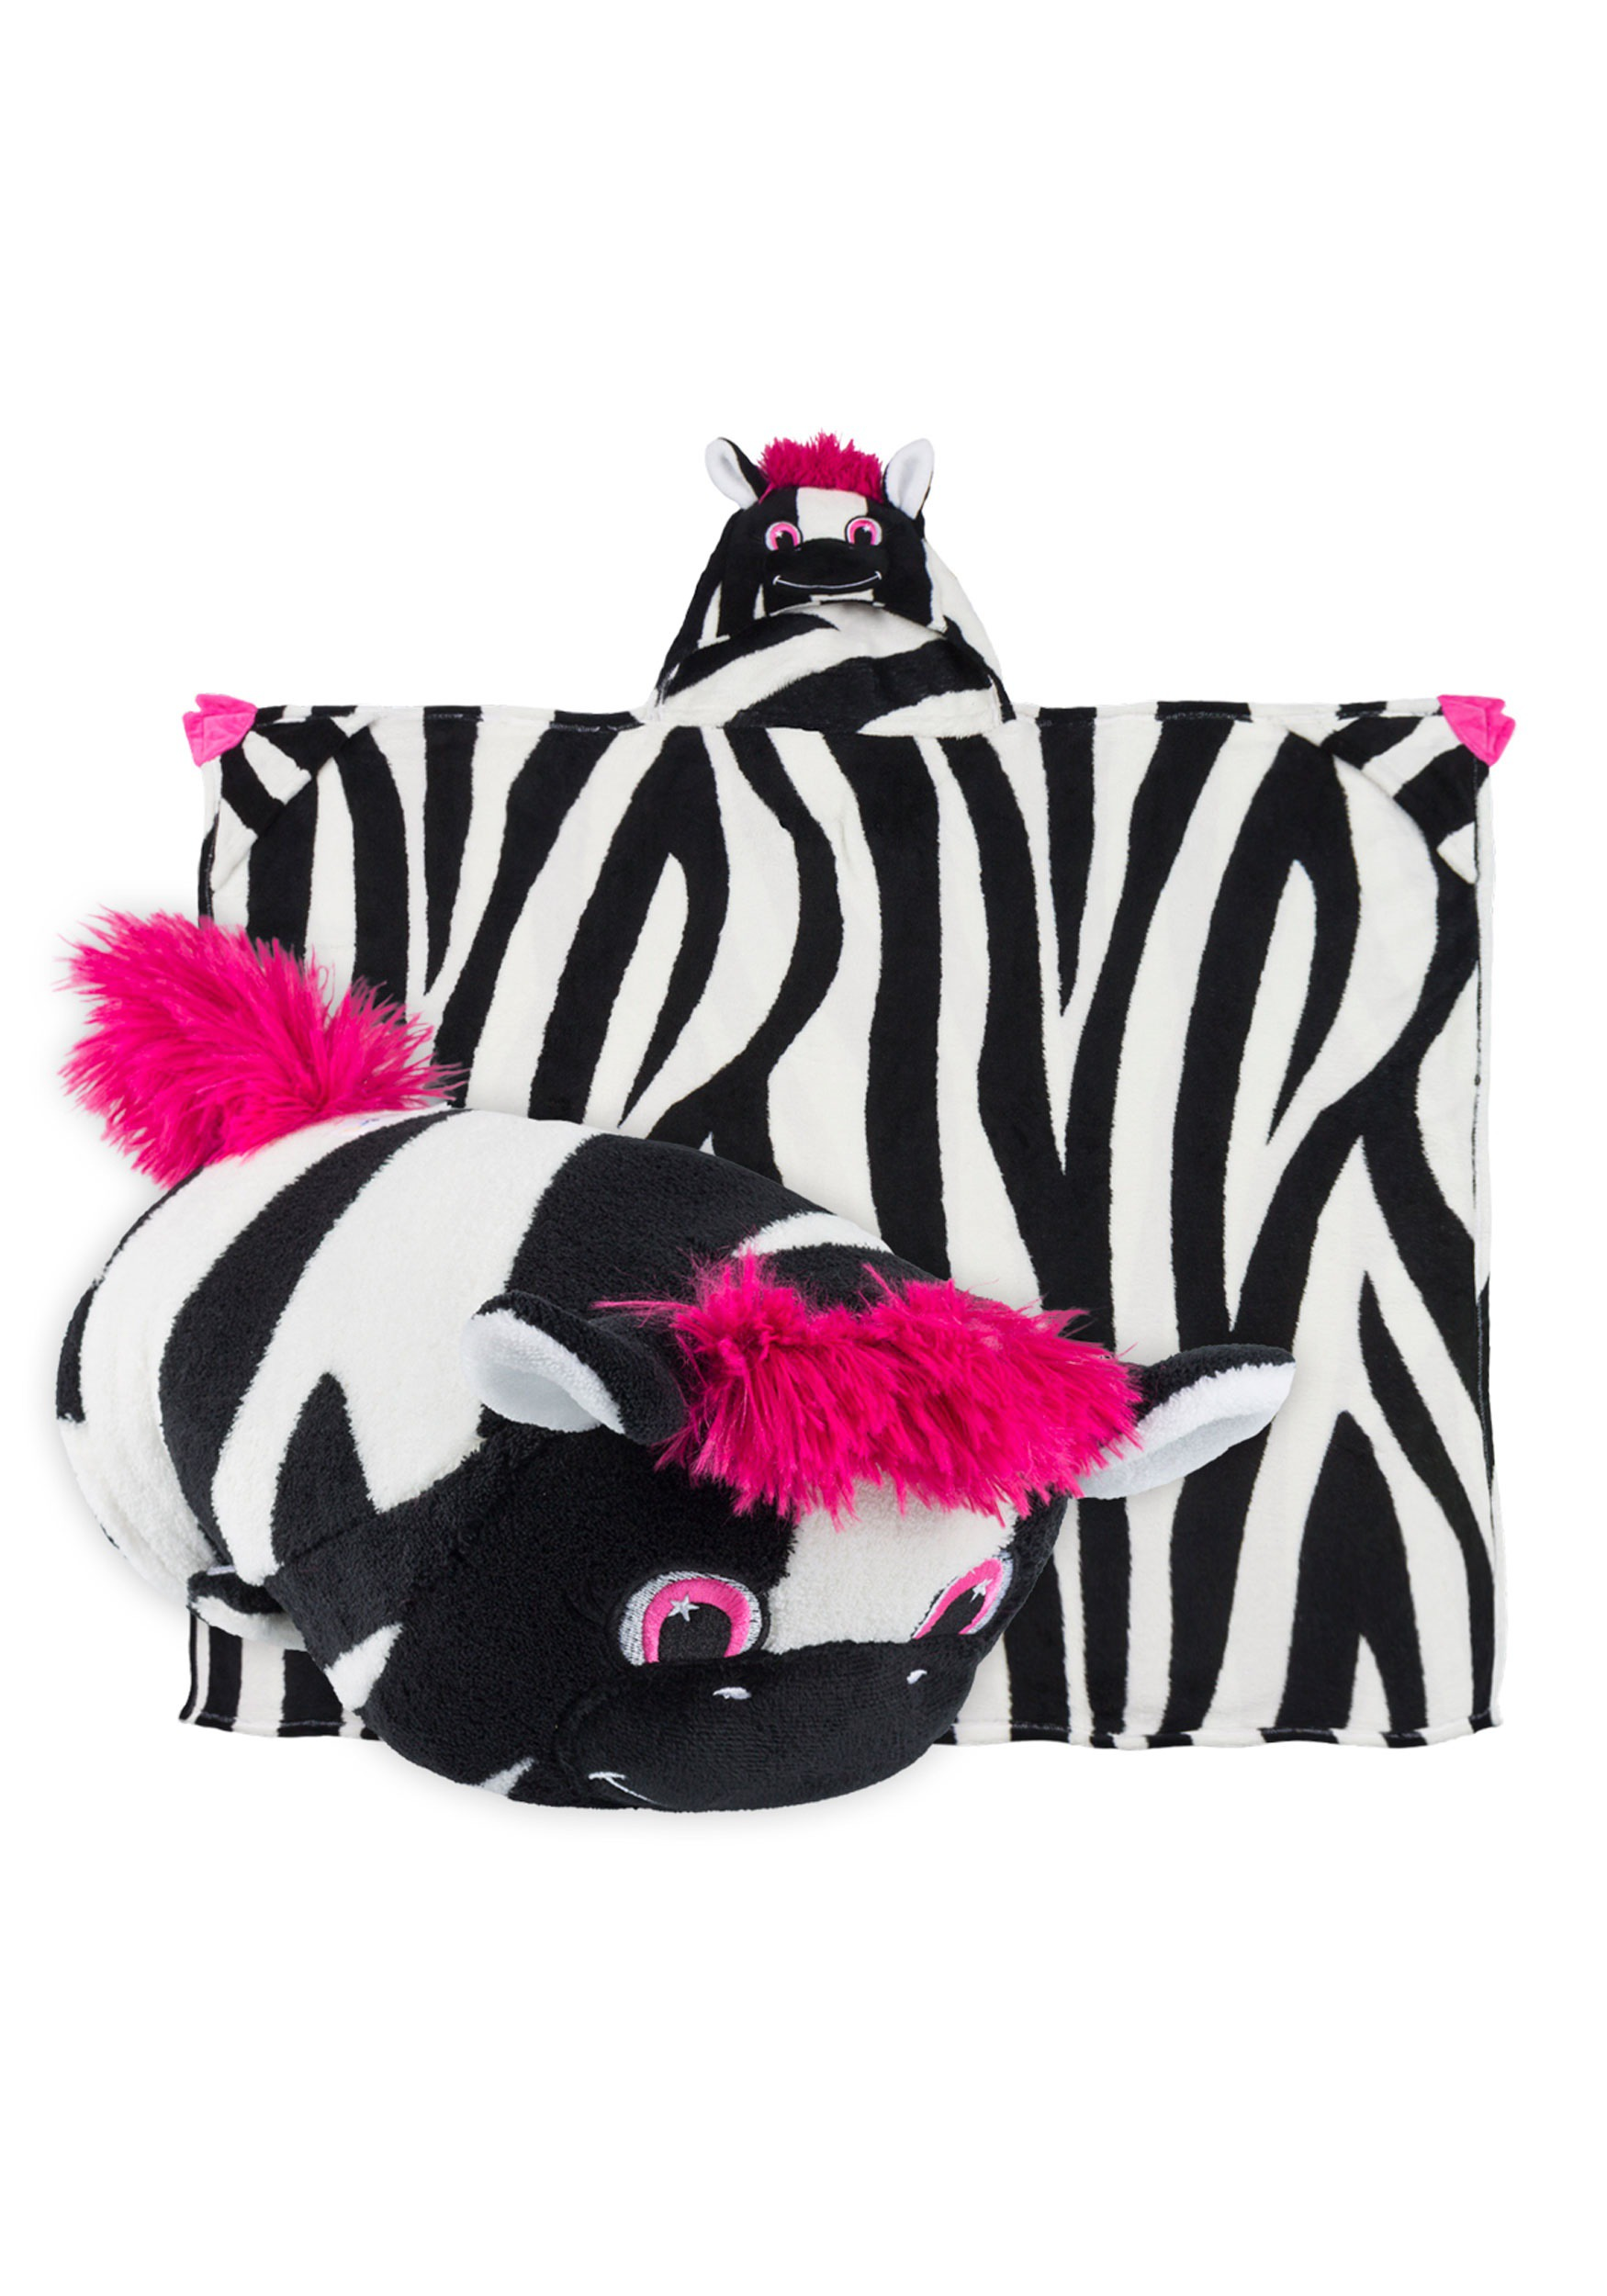 Ziggy the Zebra Comfy Critter Blanket